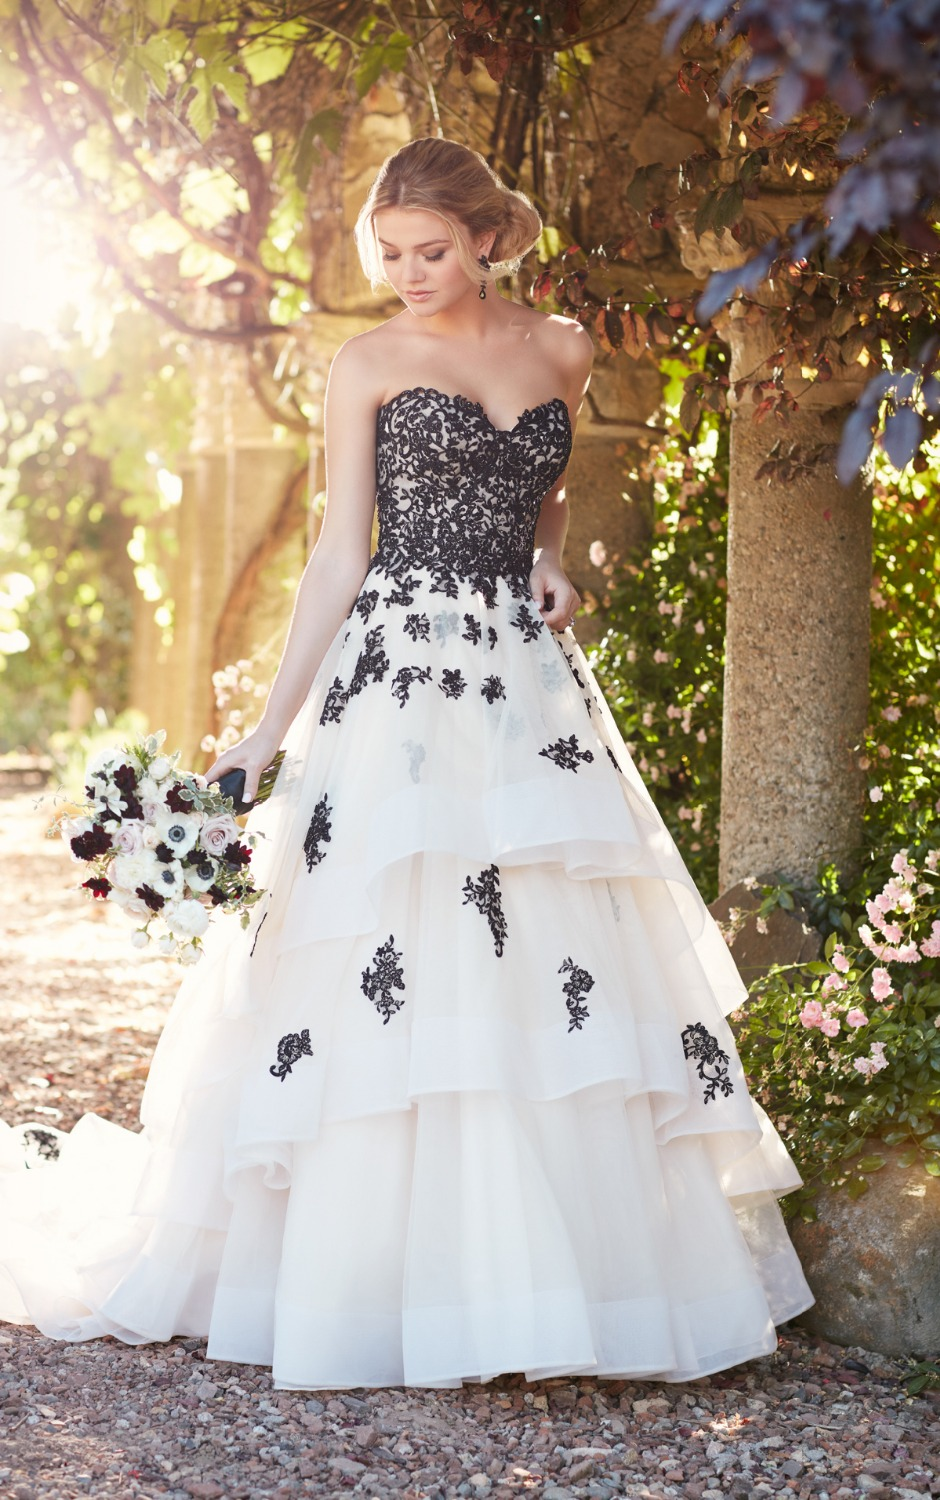 Black And White Wedding Dress 2017 Ball Gown Princess Dresses Tiered Applique Lace Bridal Robe De Soiree Longue: Black Ball Gown Princess Wedding Dresses At Reisefeber.org